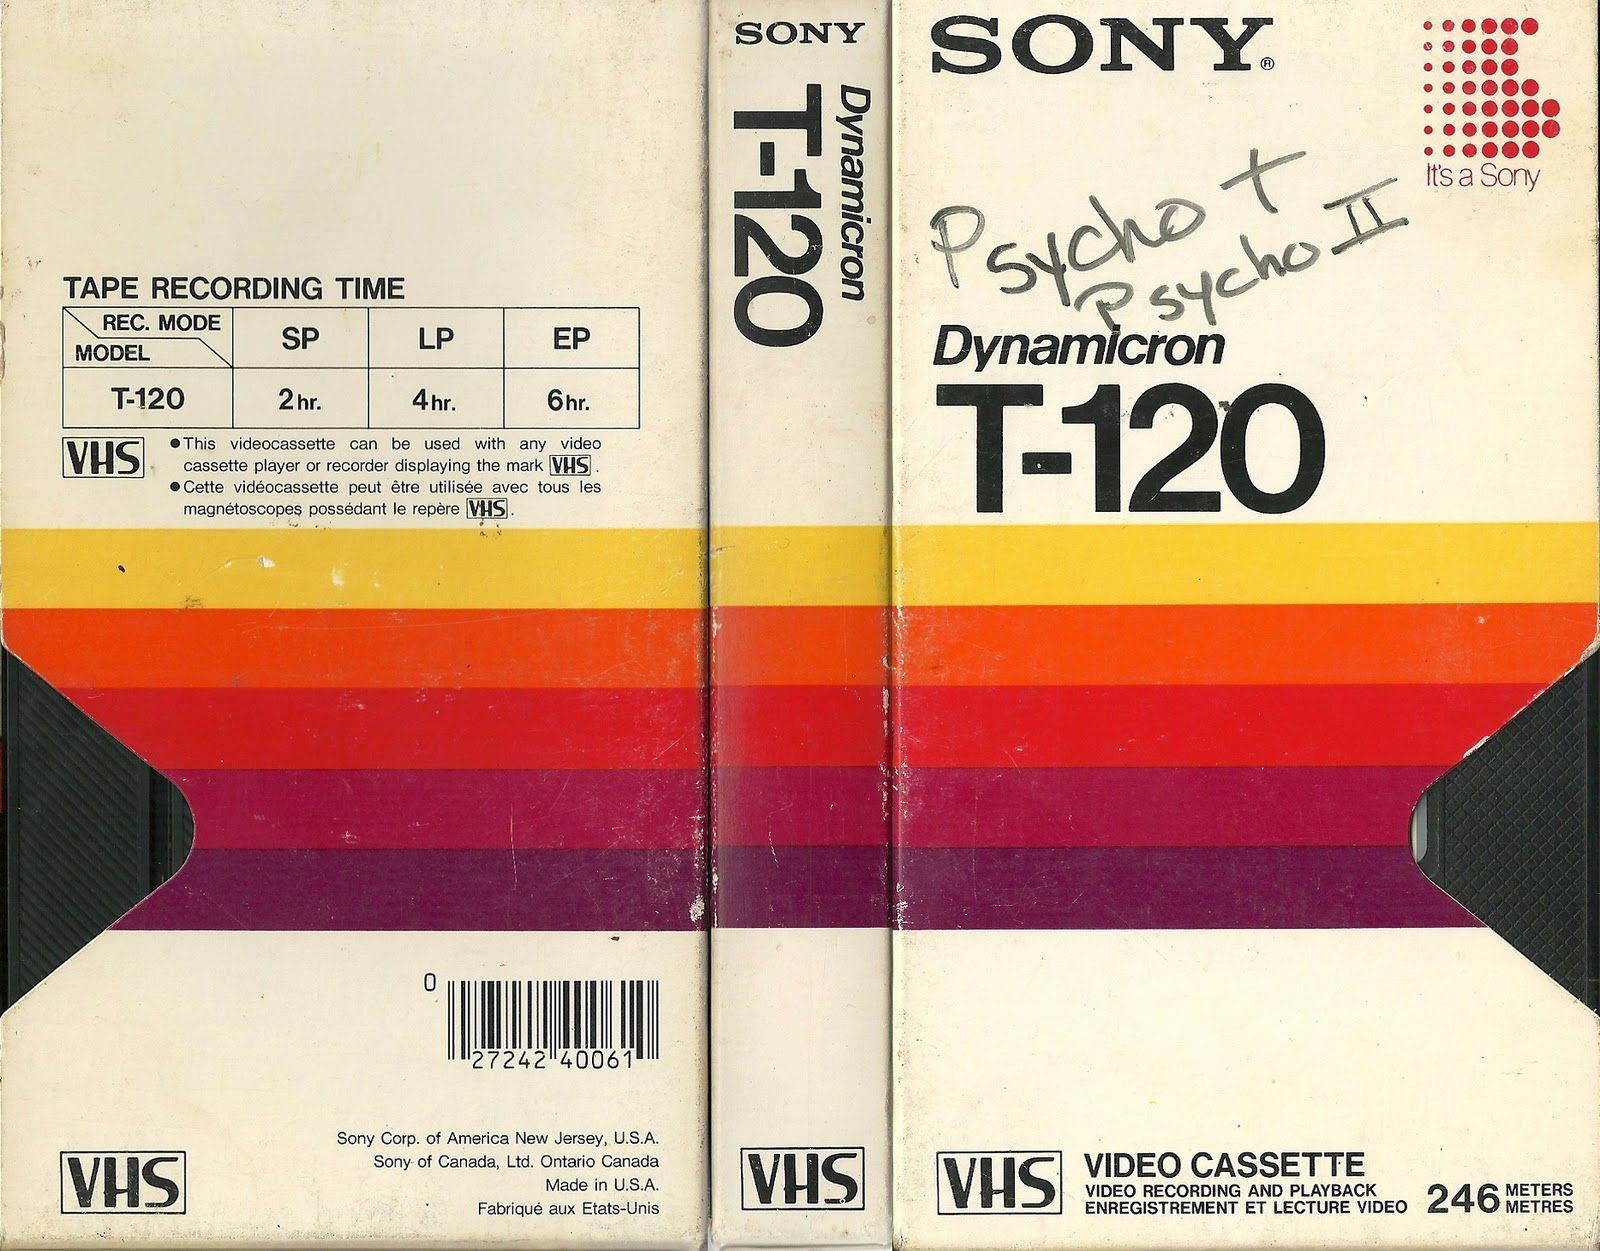 Book Jacket Design Yearbook Covers Vhs Cassette Yearbook Themes